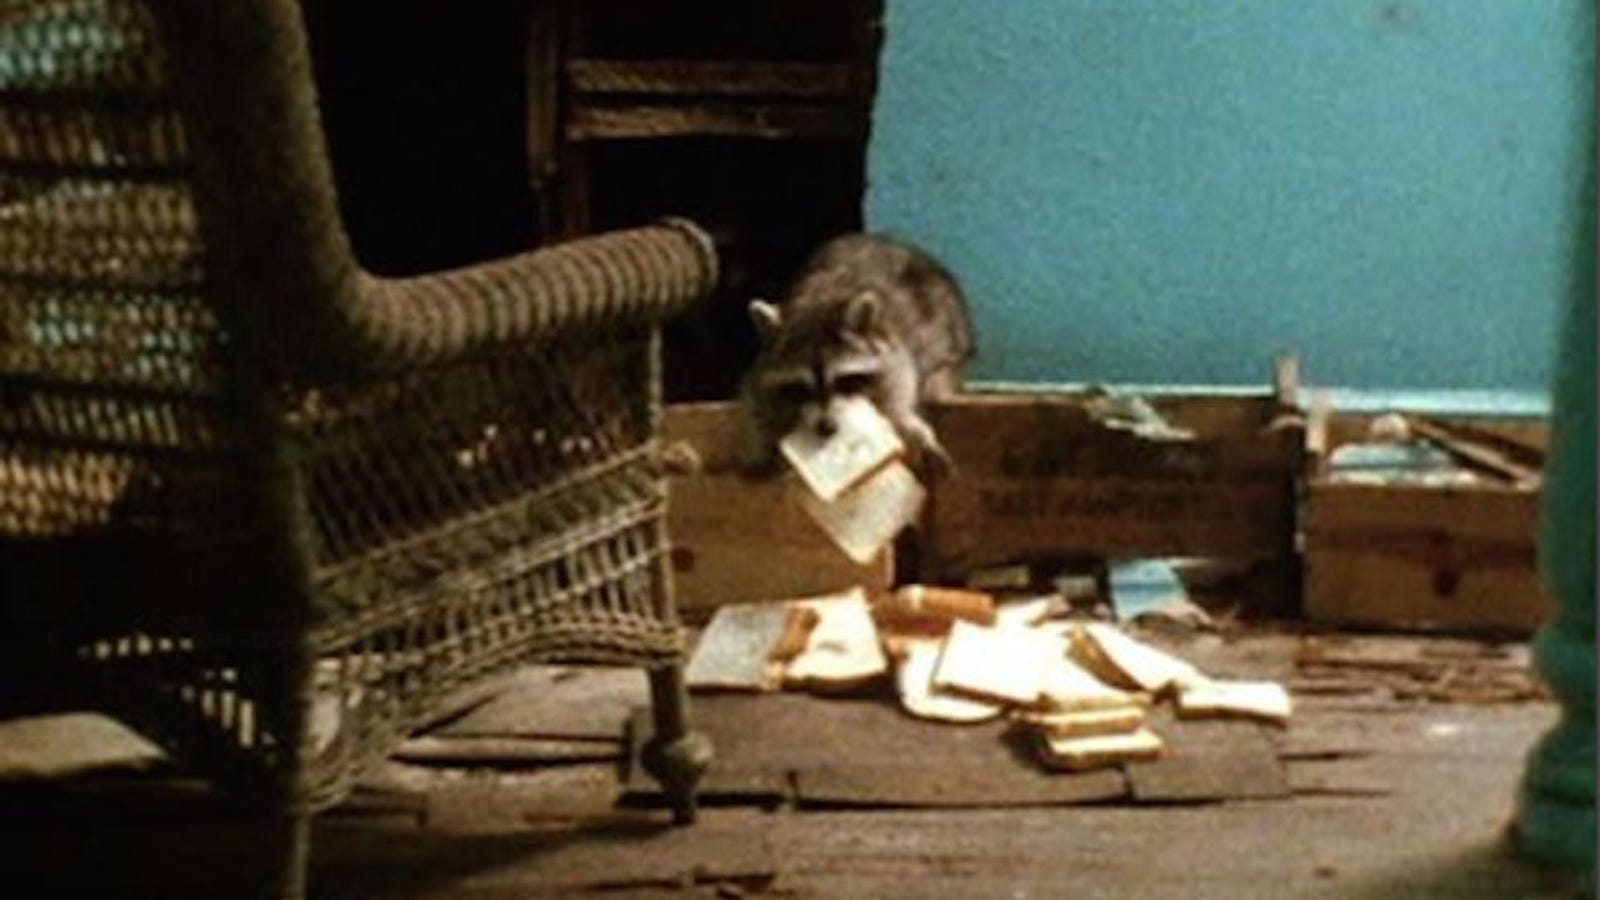 GIVE GREY GARDENS BACK TO THE RACCOONS!!!